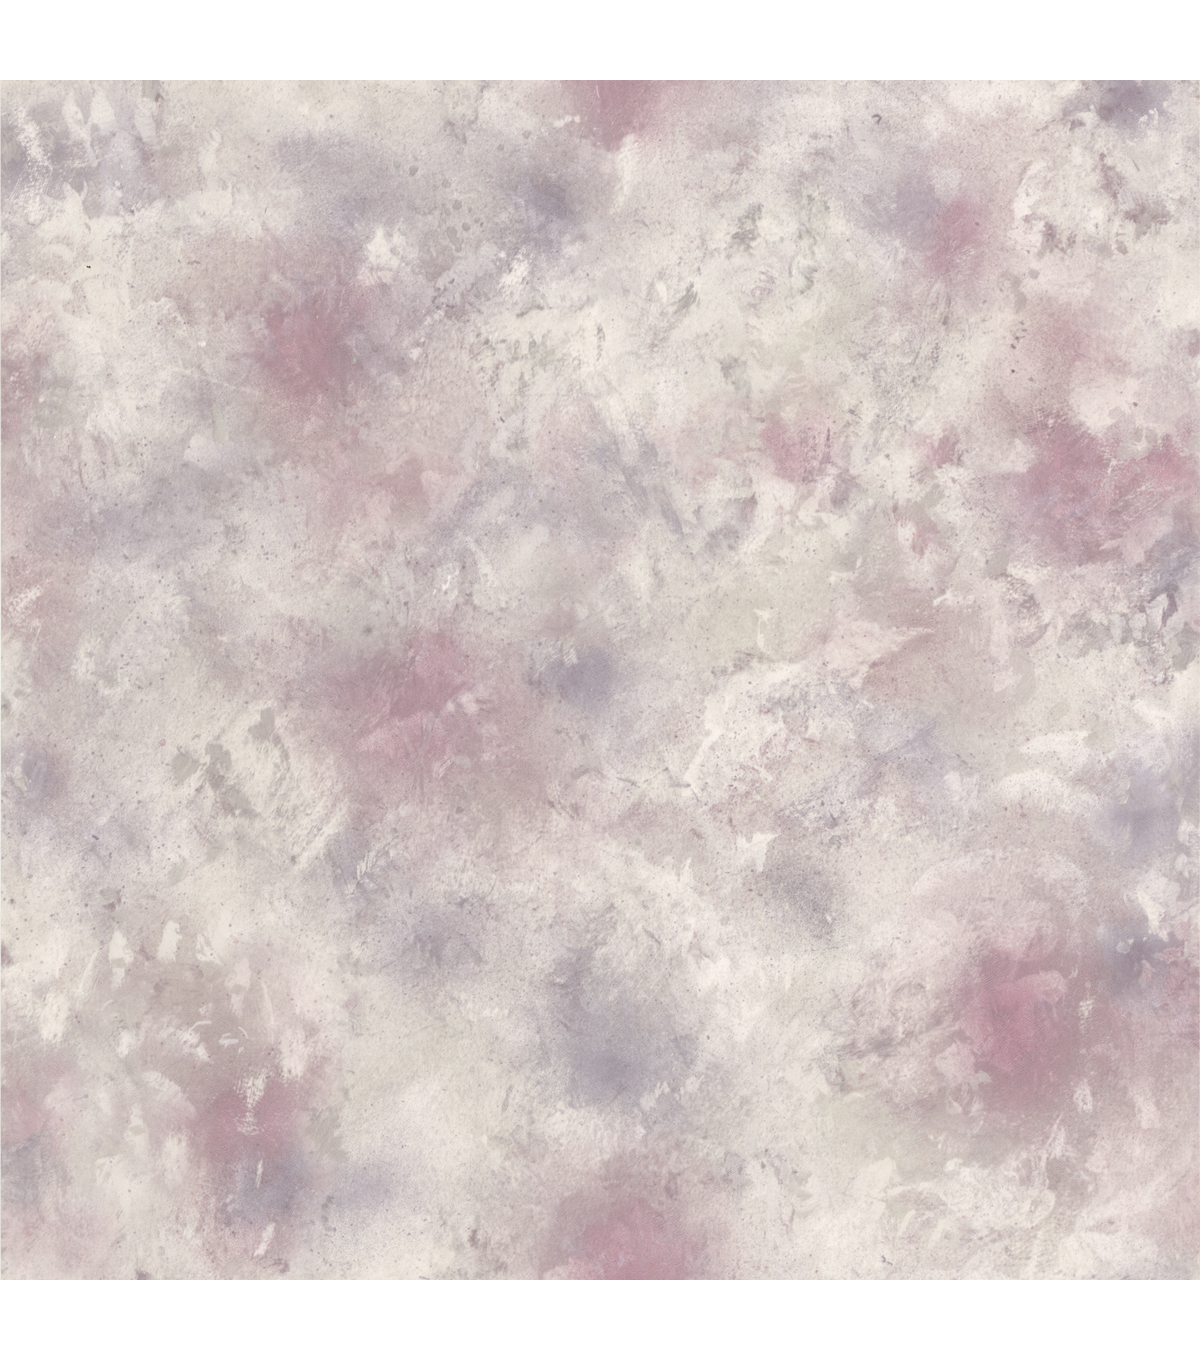 Ezra Purple Satin Marble Wallpaper Sample